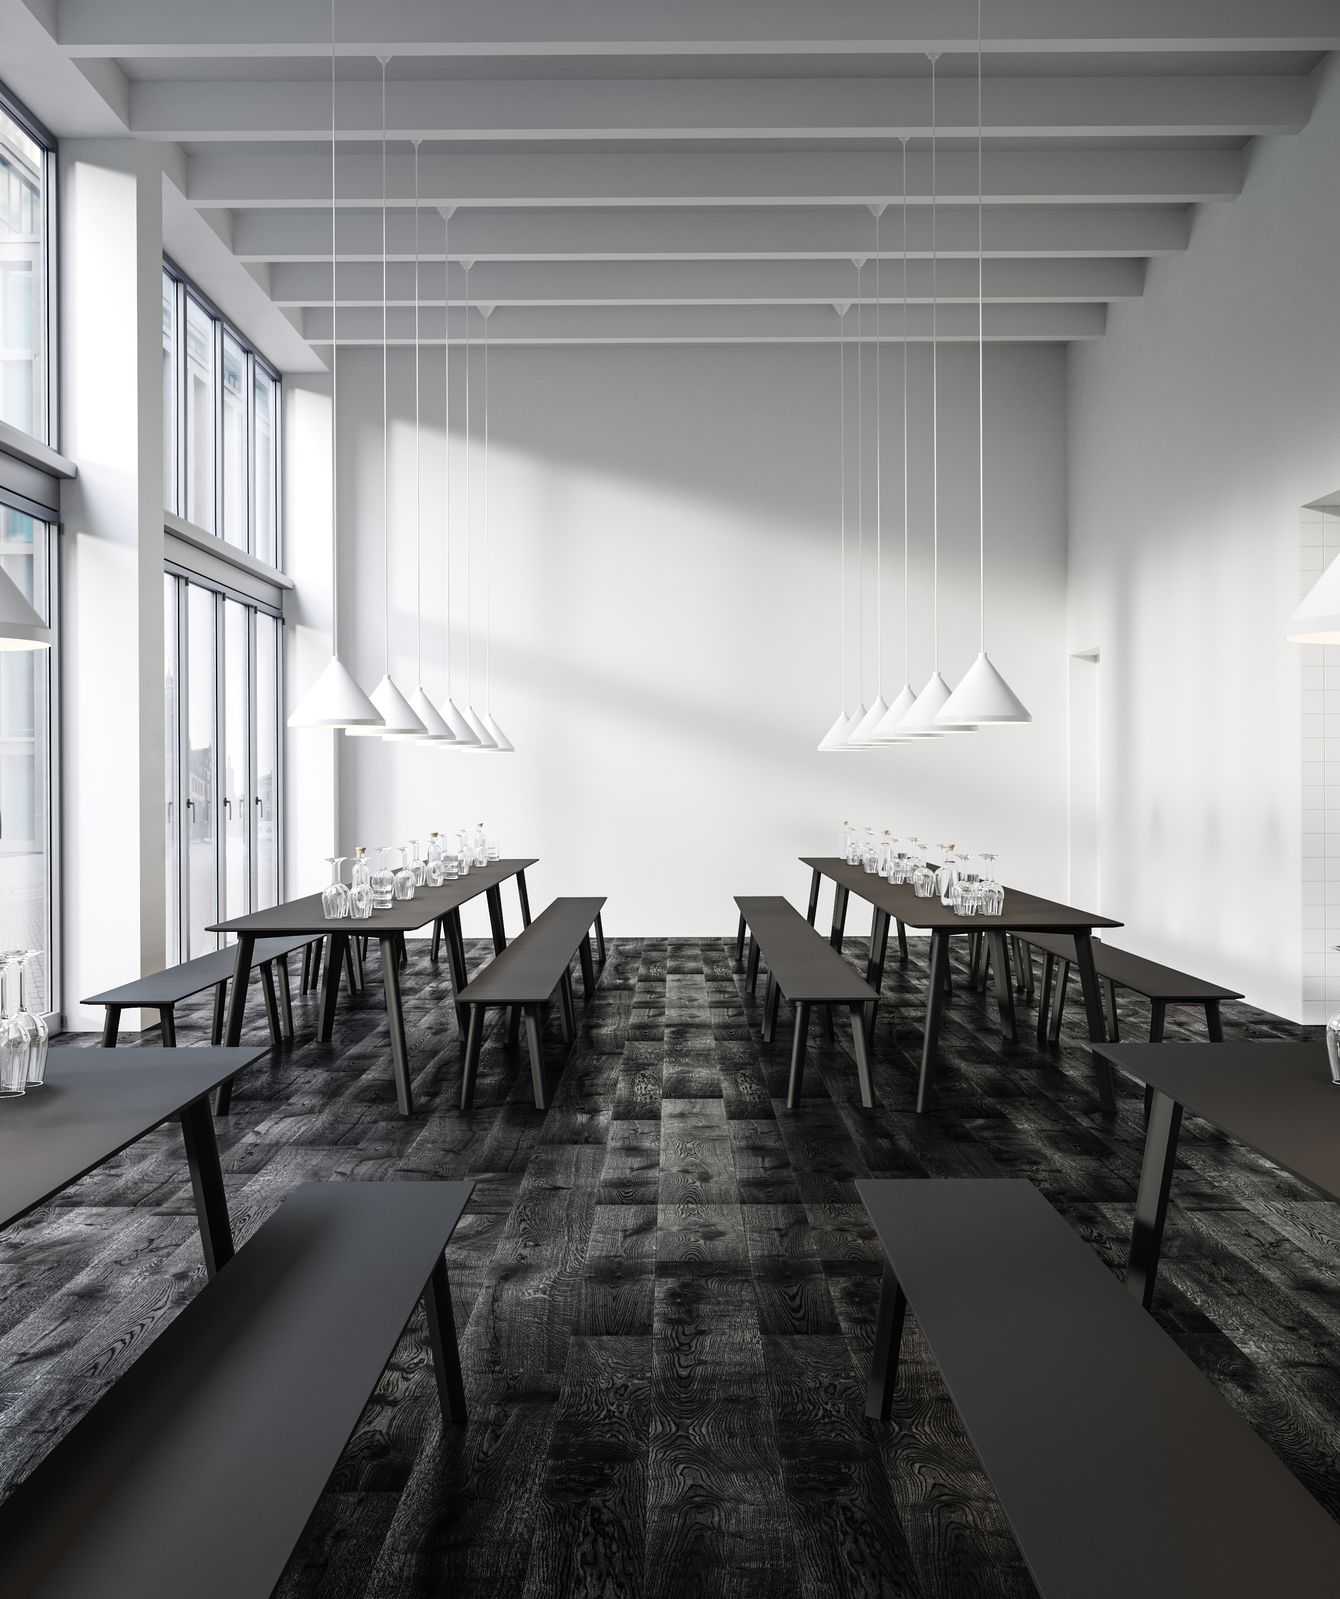 Comtemporary dining area with dark wood long tables and benches and lamps in Nordic Black & White